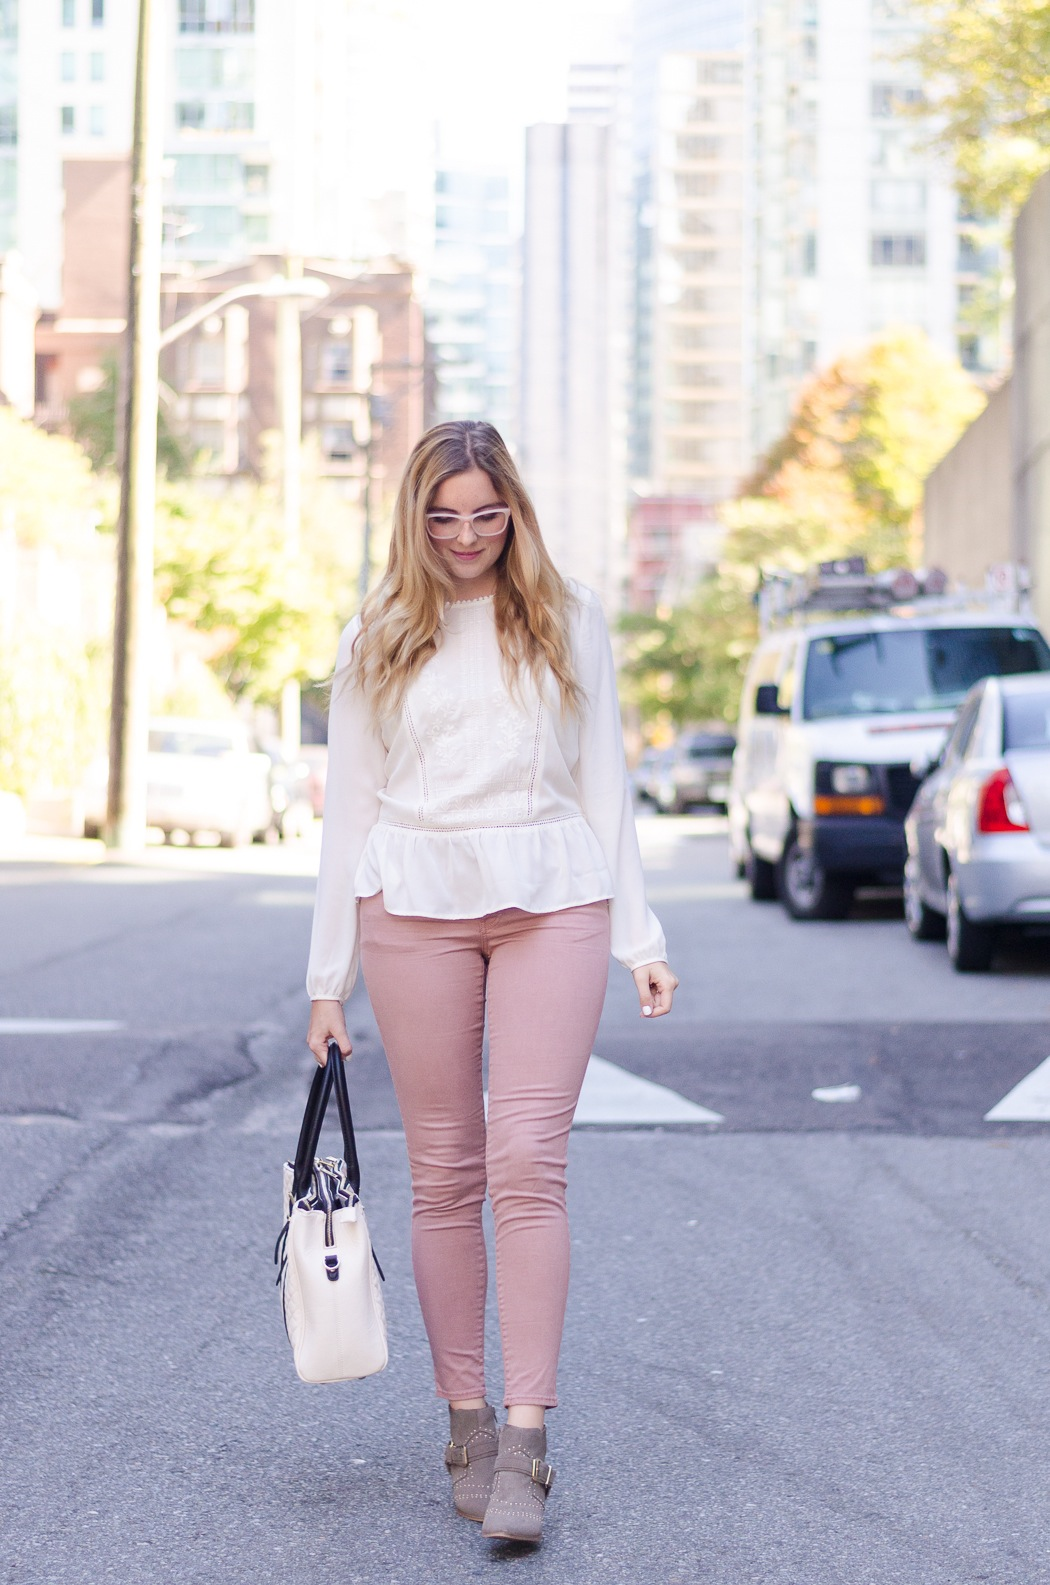 the urban umbrella style blog, vancouver style blog, vancouver fashion blog, vancouver lifestyle blog, vancouver health blog, vancouver fitness blog, vancouver travel blog, canadian faashion blog, canadian style blog, canadian lifestyle blog, canadian health blog, canadian fitness blog, canadian travel blog, bree aylwin, american eagle sateen begging in buff, AEO jeggings, how to style jeggings, forever 21 peasant blouse, aldo studded boots, Ever New quilted handbag, how to keep organized, blogging organization tips, best lifestyle blogs, best fitness blogs, best health blogs, best travel blogs, top fashion blogs, top style blogs, top lifestyle blogs, top fitness blogs, top health blogs, top travel blogs